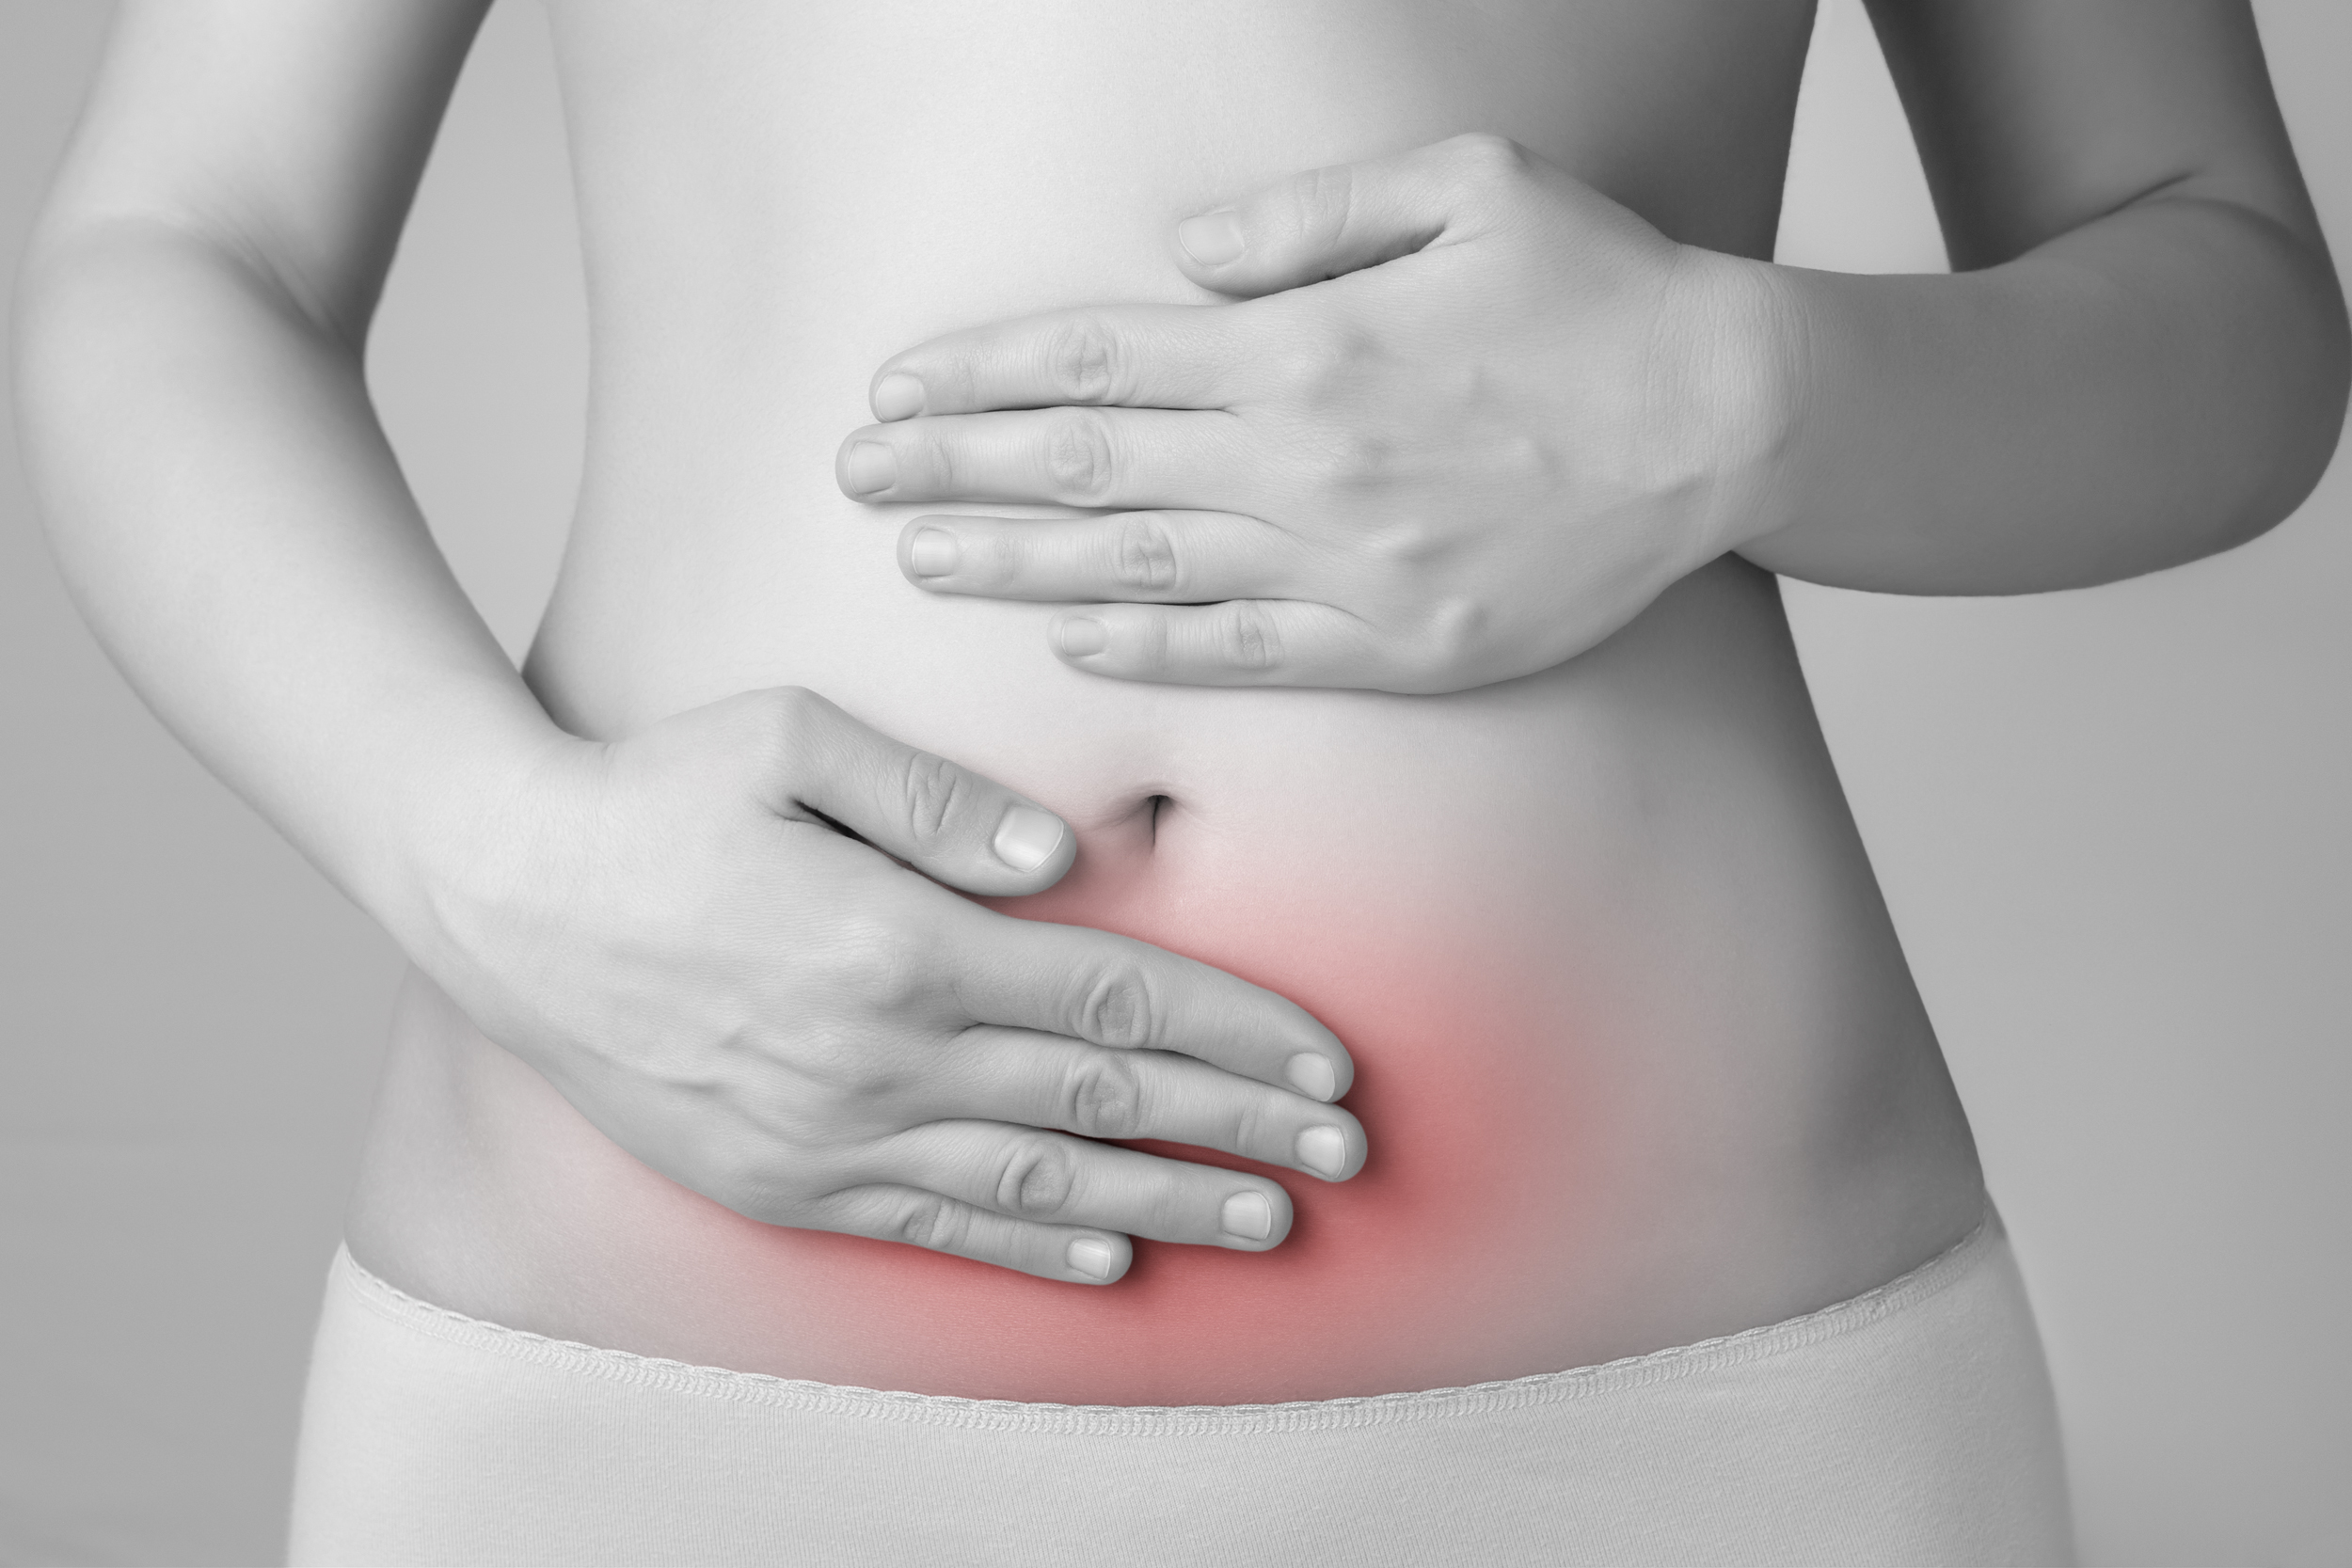 Endometriosis-Associated Pelvic Pain Treated Using Homeopathy in Study